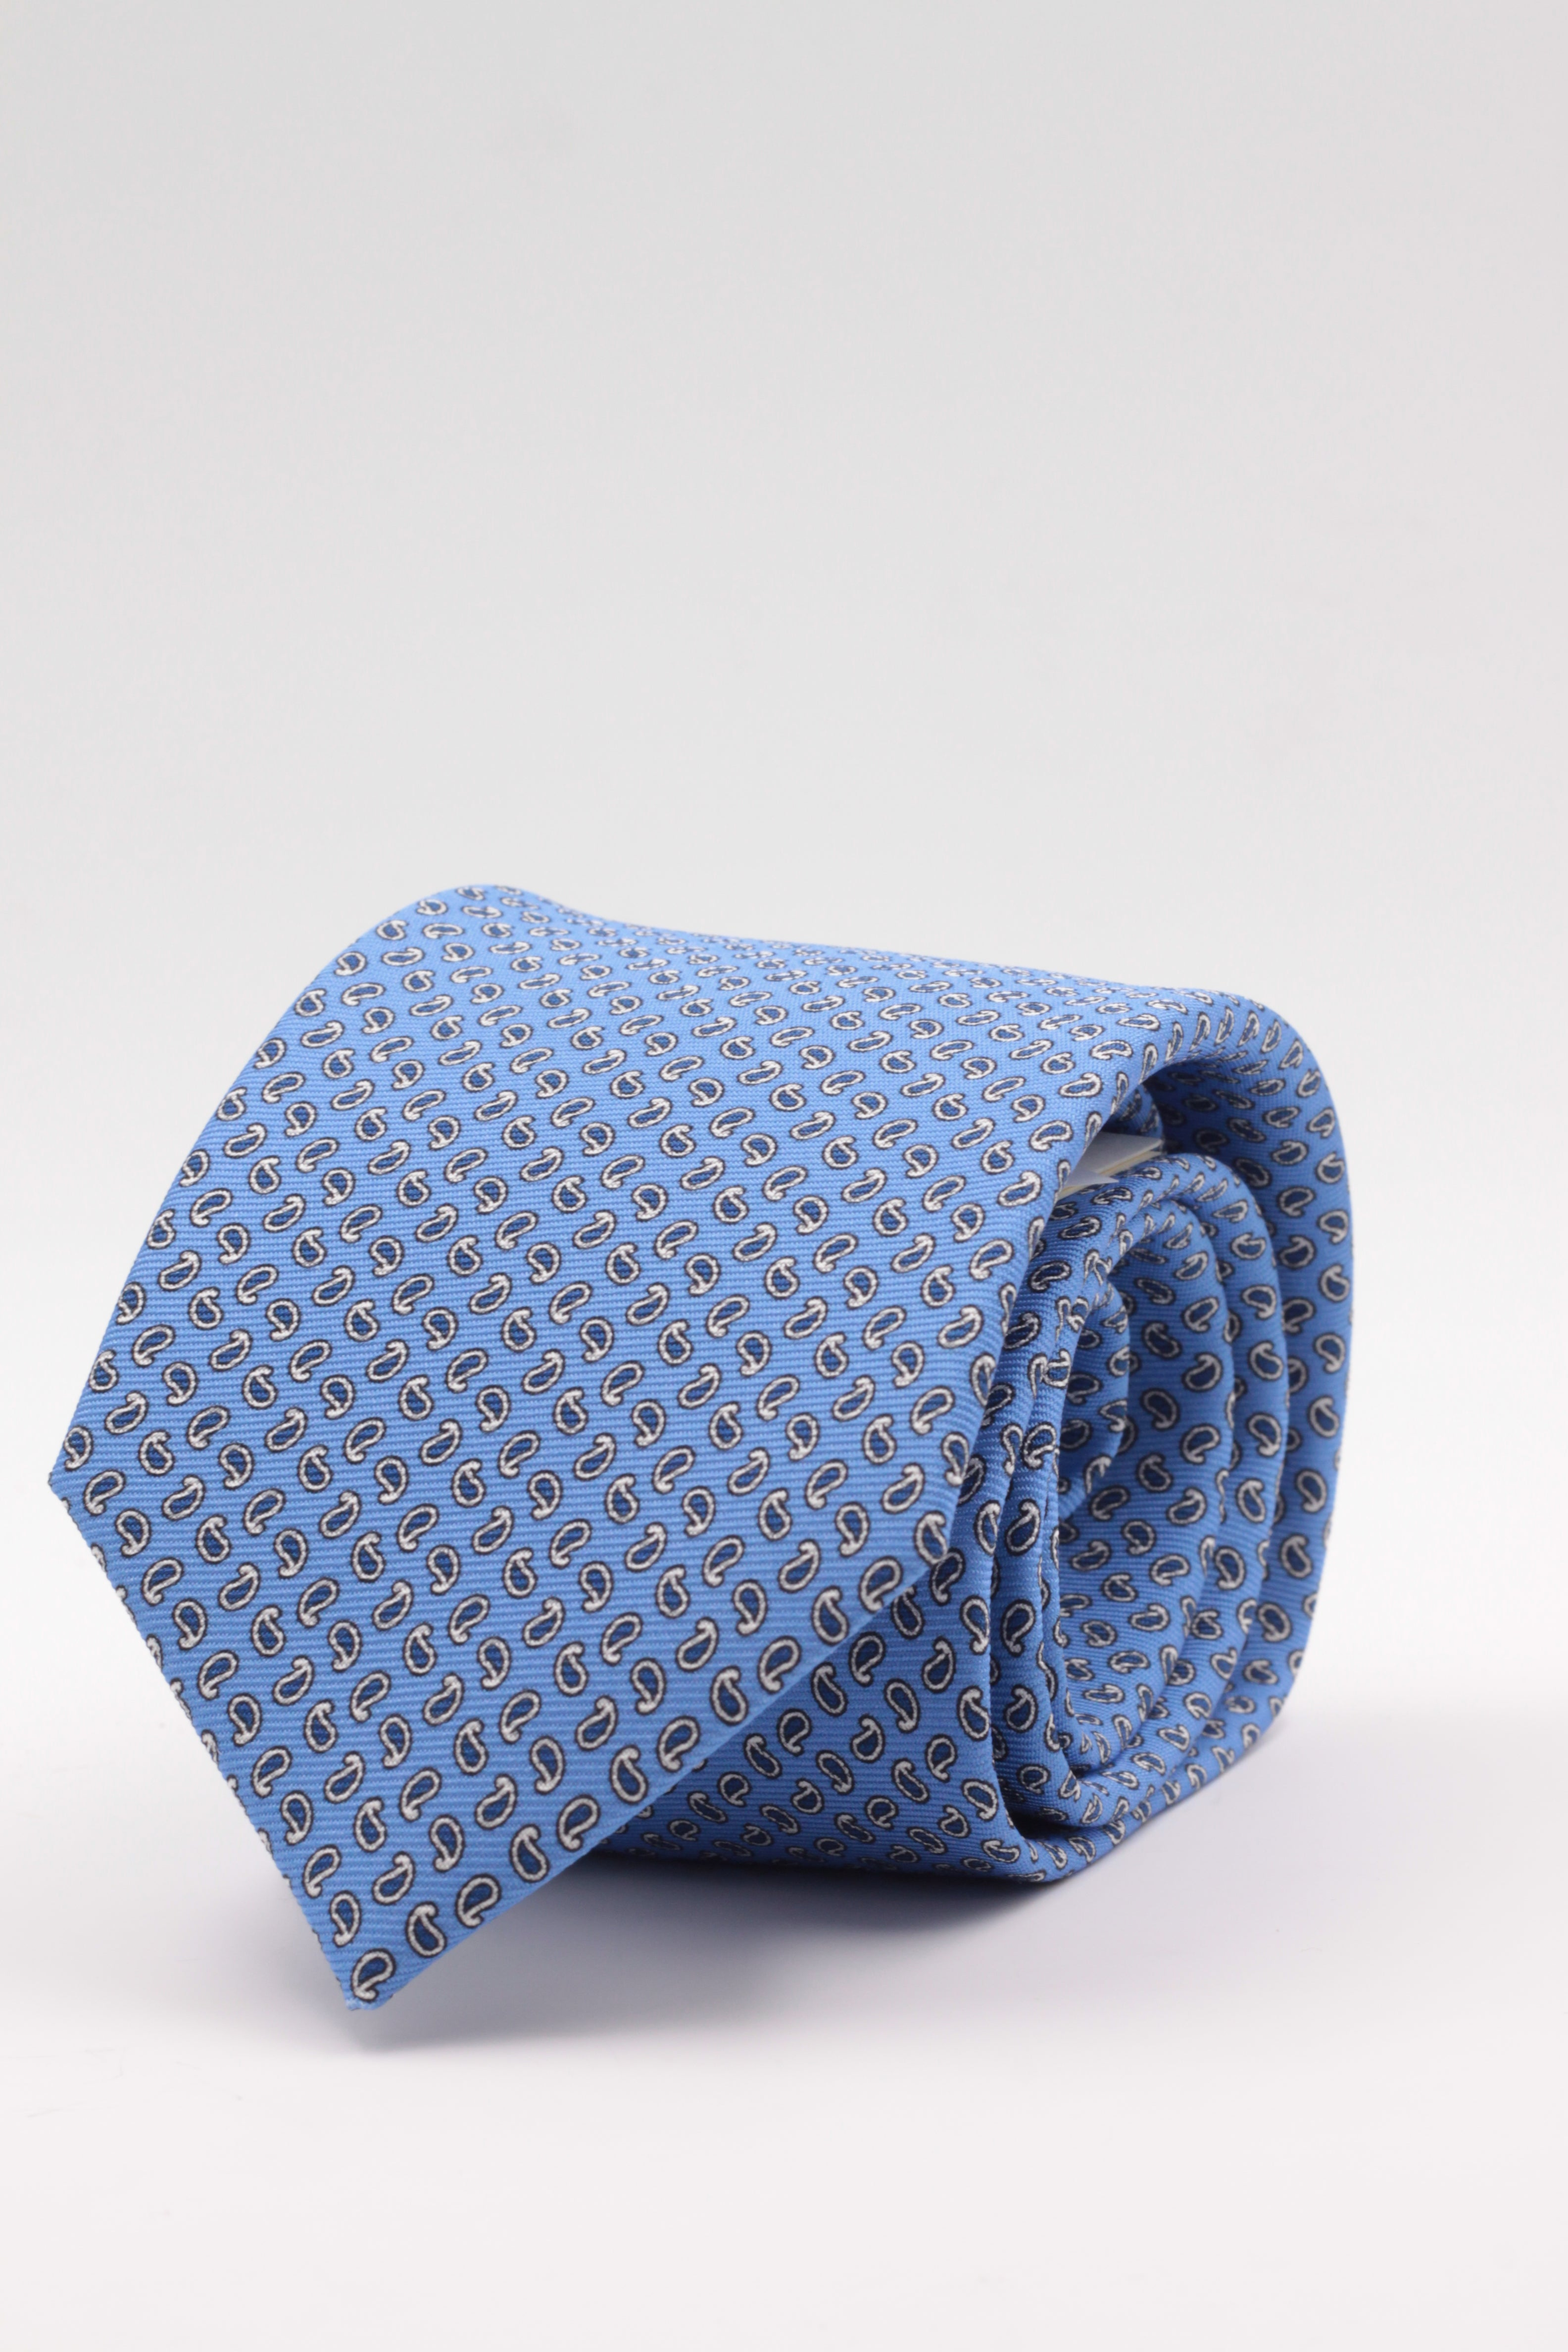 Holliday & Brown for Cruciani & Bella 100% printed Silk Self tipped Light blue, white and blue navy motif tie Handmade in Italy 8 cm x 150 cm